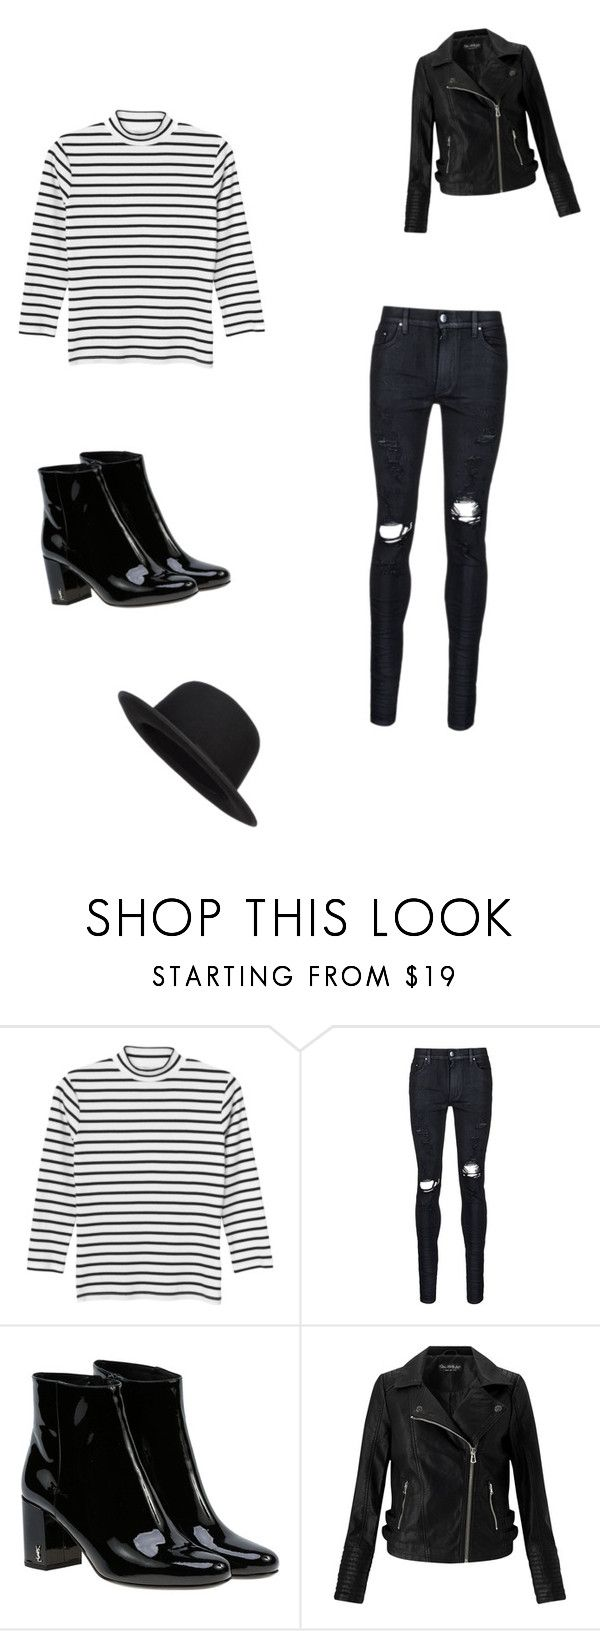 """Untitled #320"" by parisgirl000 ❤ liked on Polyvore featuring Monki, AMIRI, Yves Saint Laurent and Miss Selfridge"